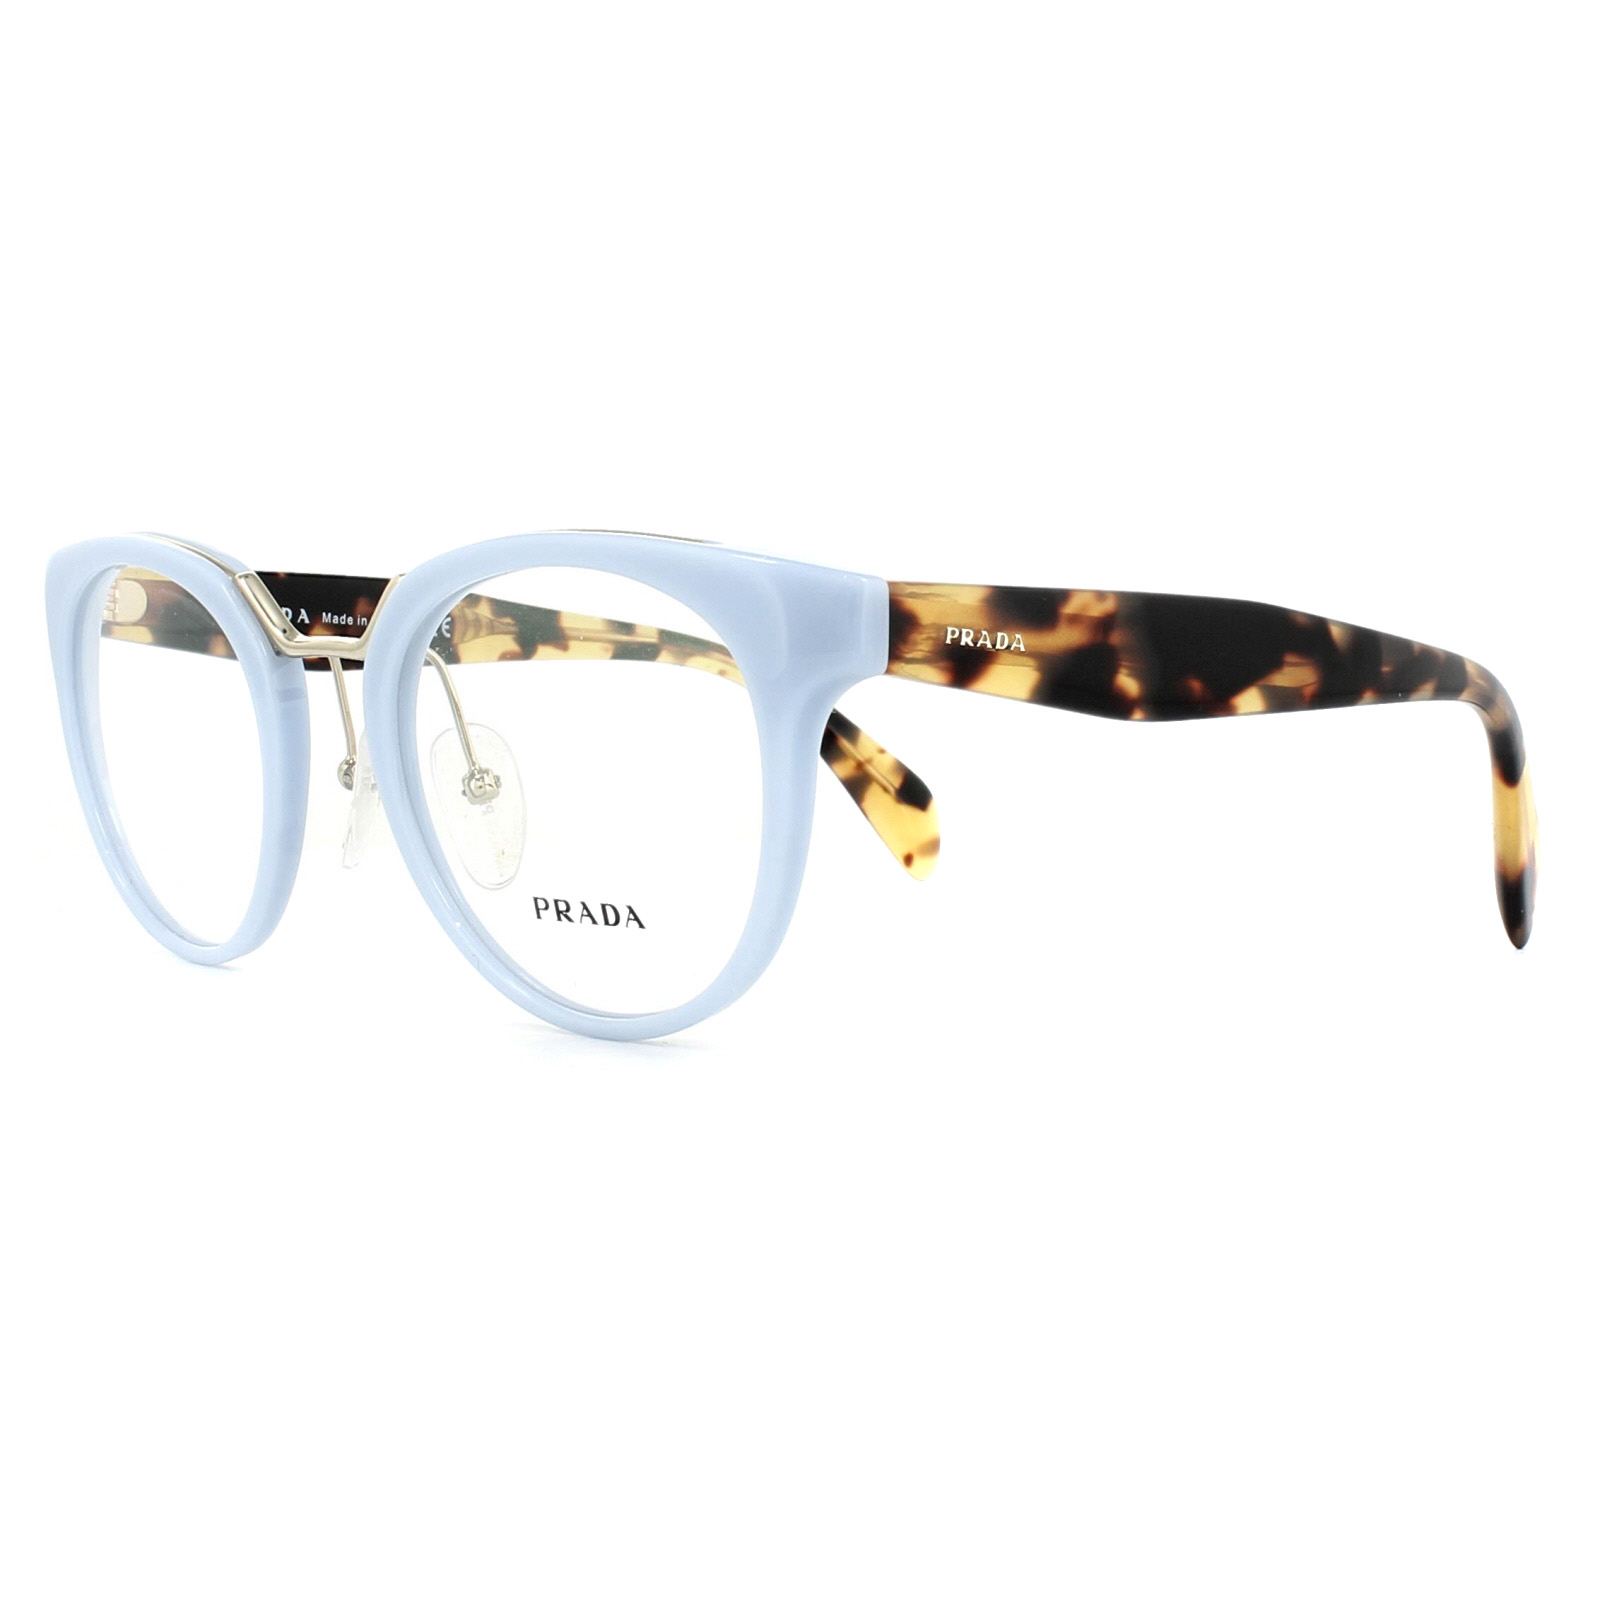 6244c4ea36 Prada Glasses Frames PR03UV VX71O1 Azure 49mm Womens 8053672781779 ...